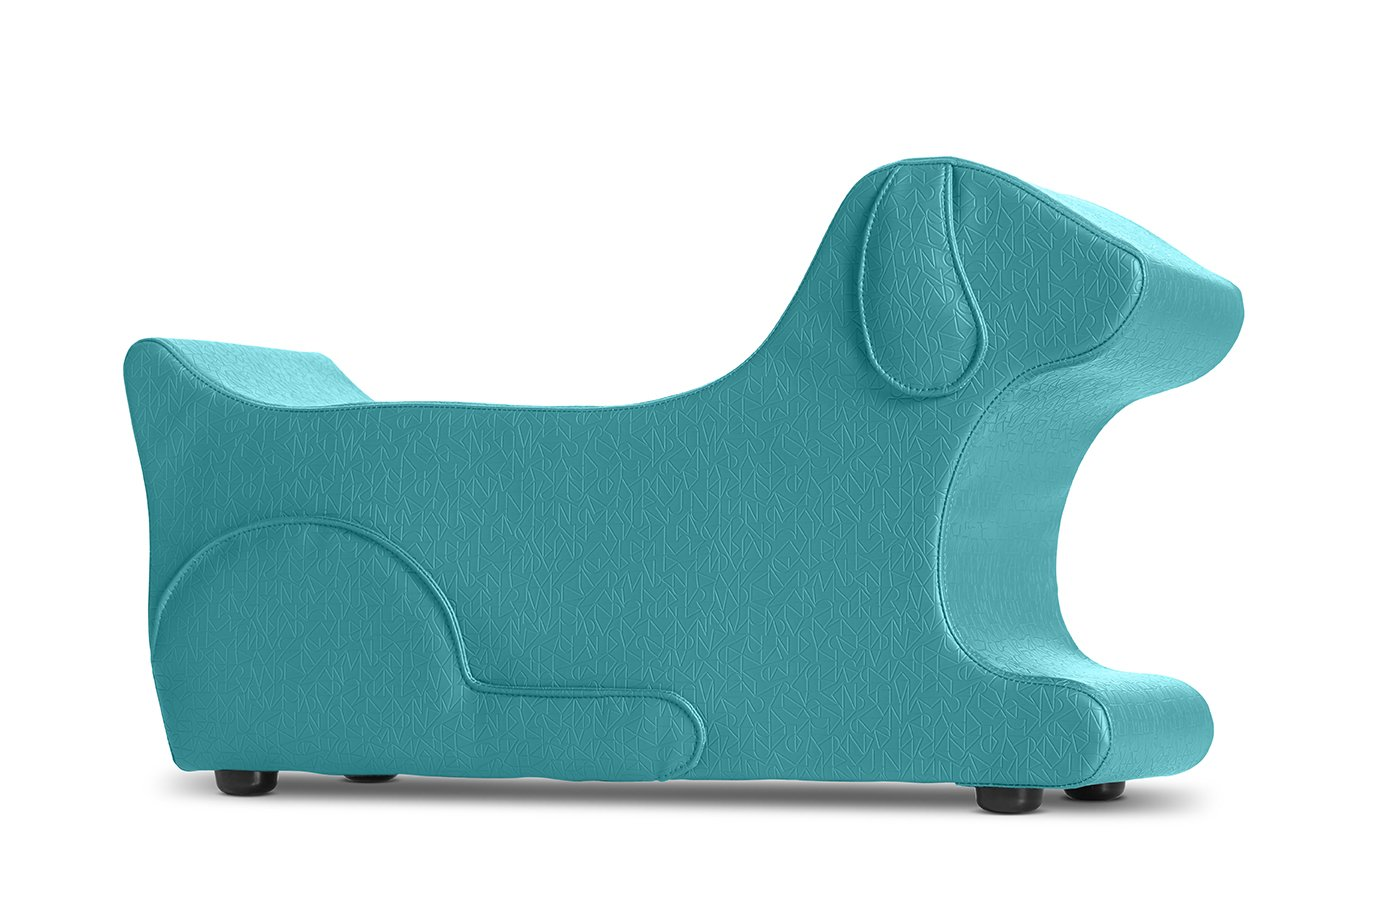 Logic Furniture BARKXTL17 Bark Ottoman, Teal